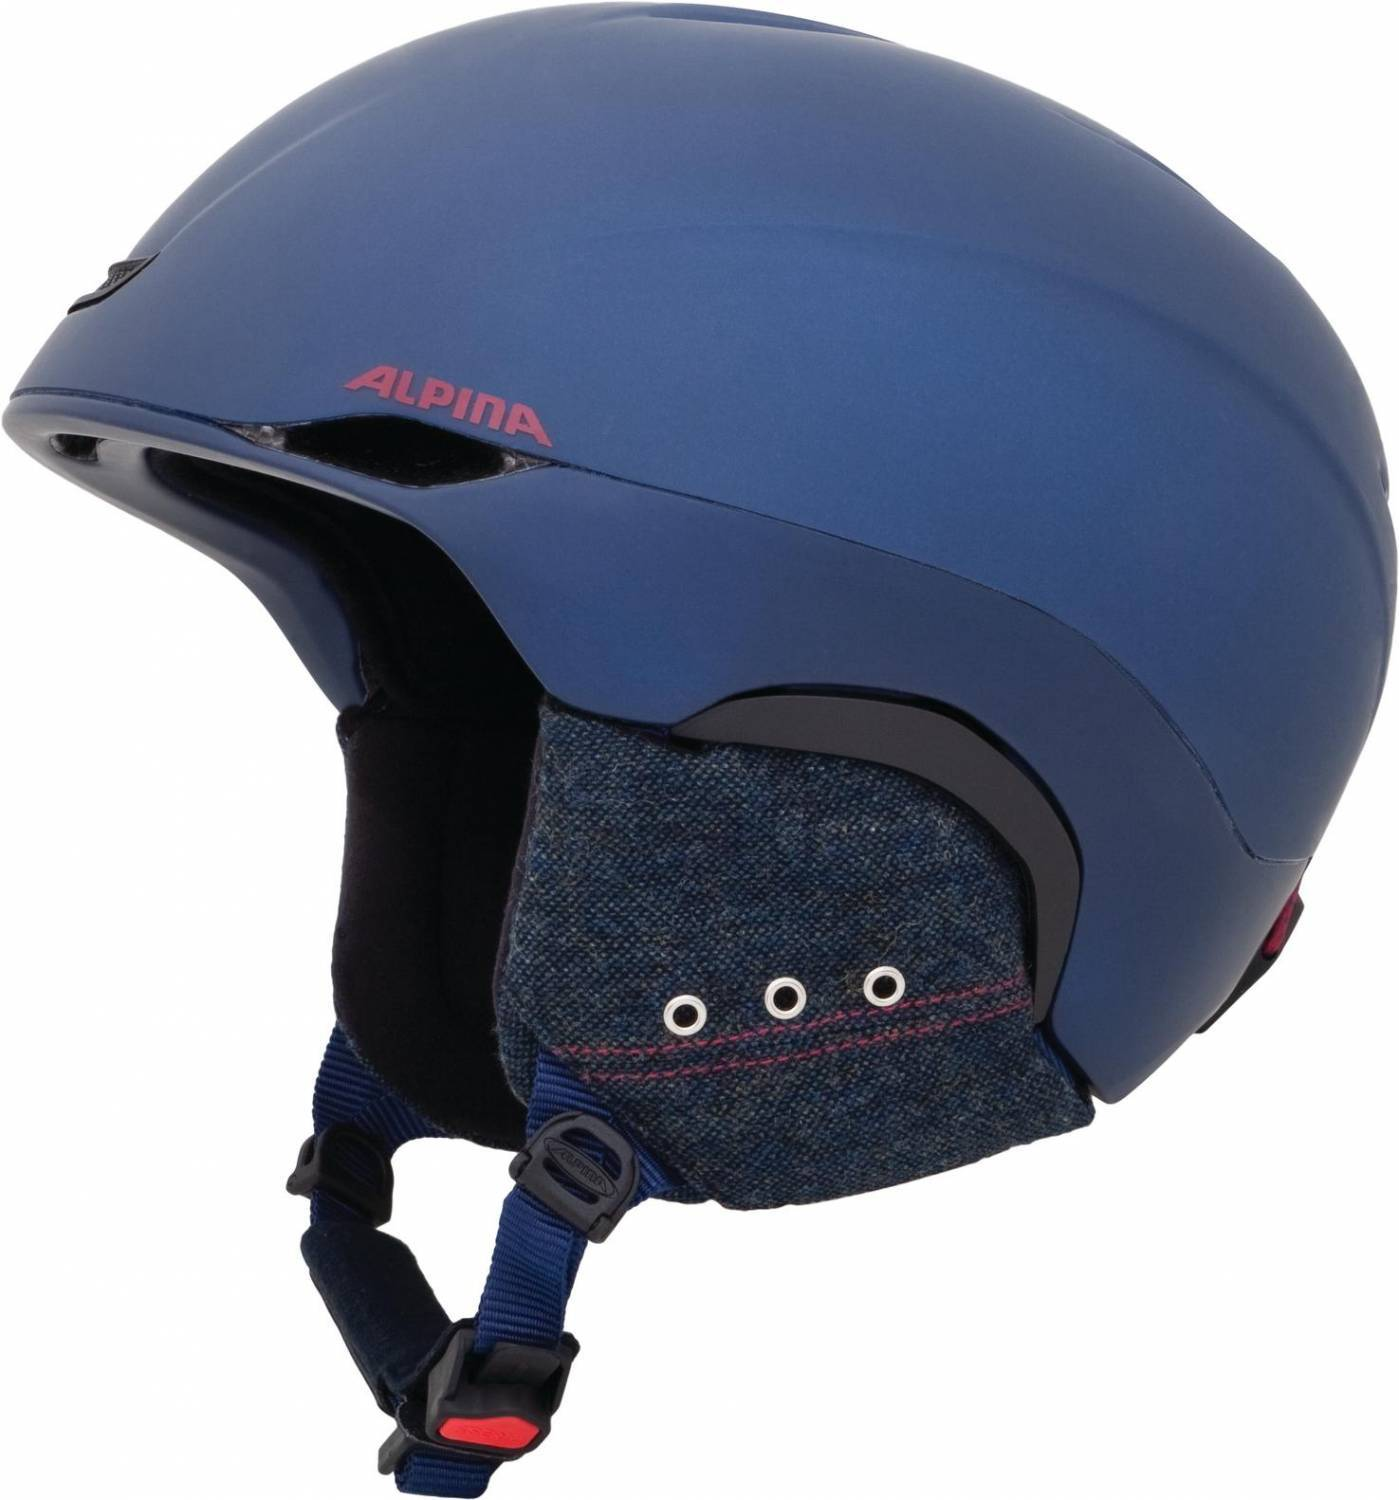 alpina-parsena-skihelm-gr-ouml-szlig-e-52-56-cm-81-nightblue-bordeaux-matt-